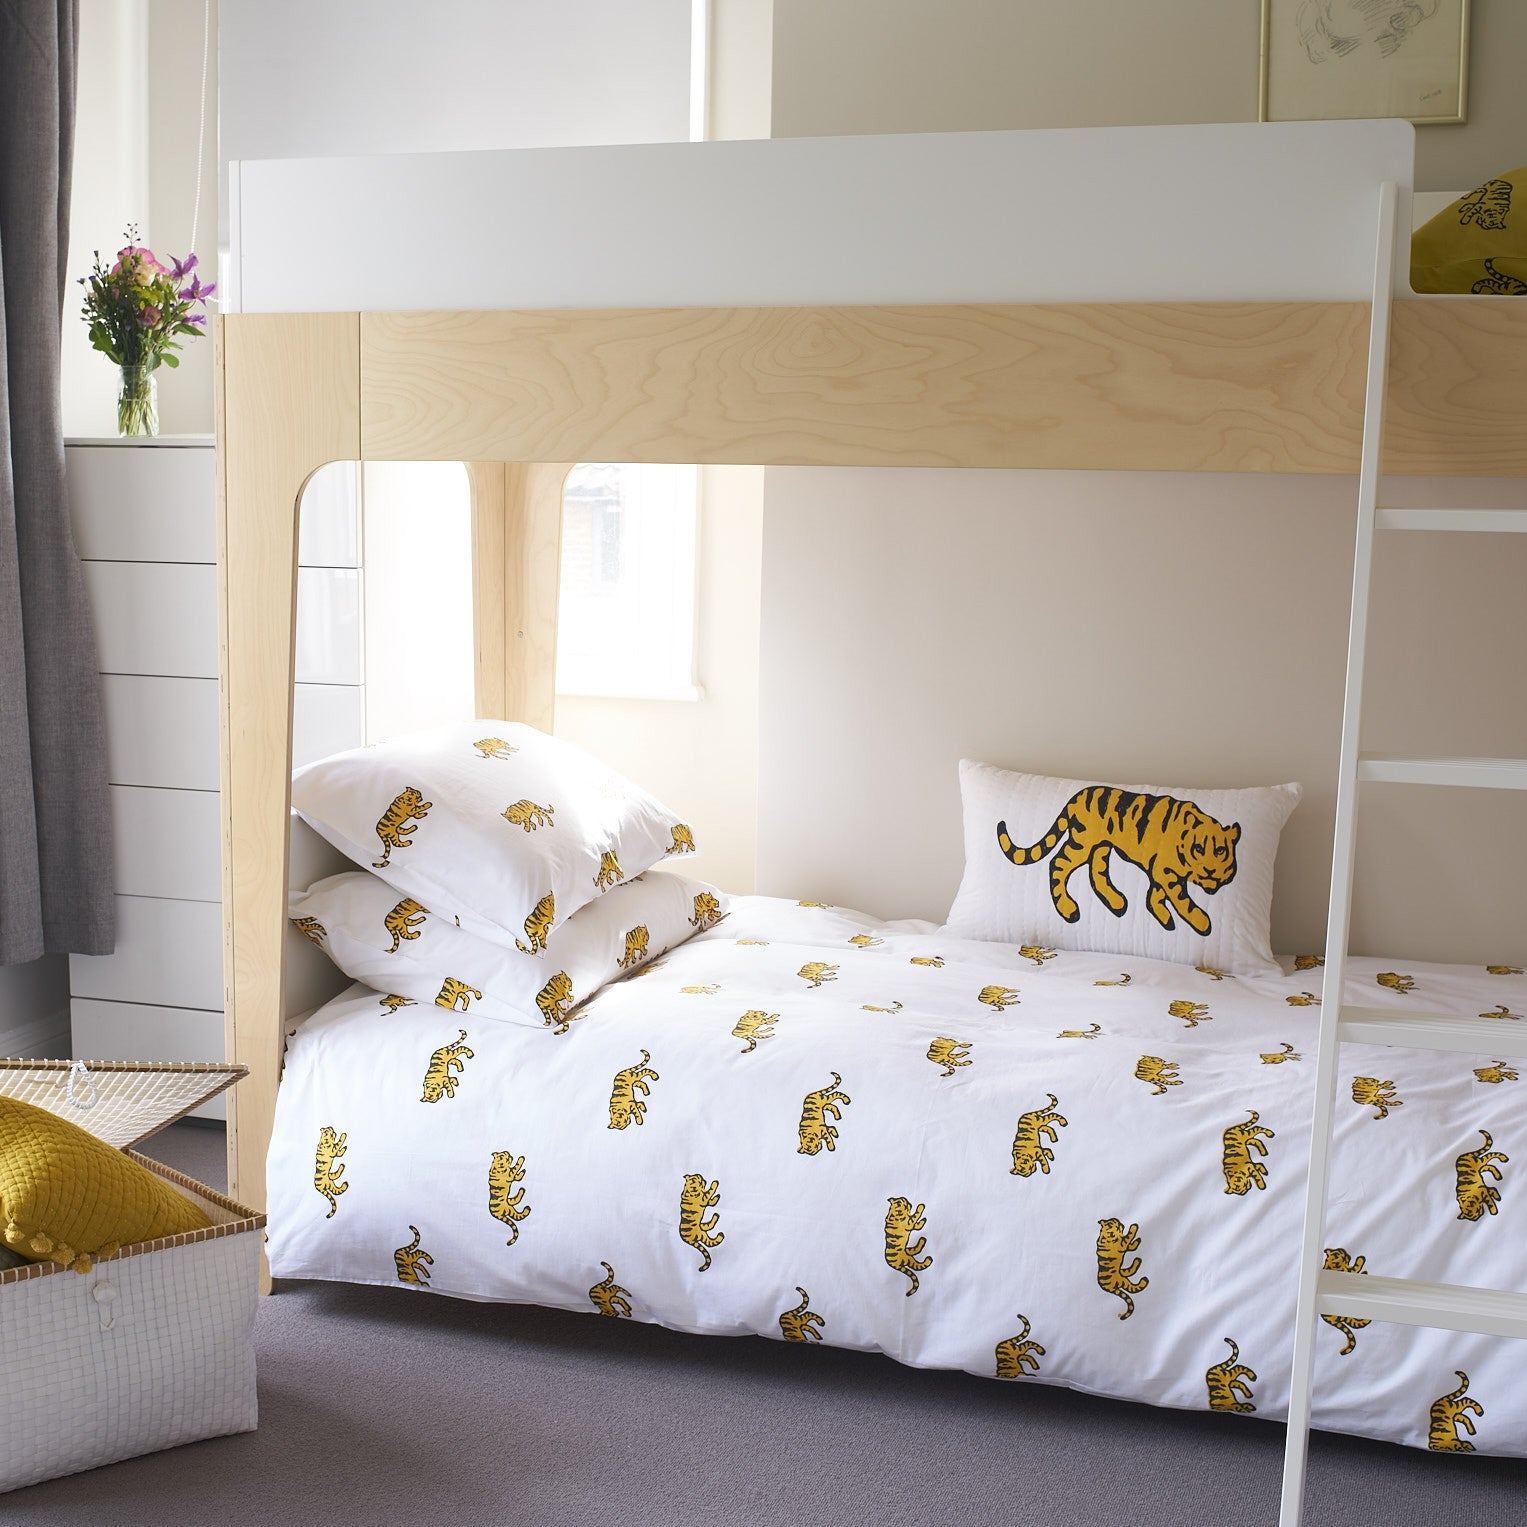 Yellow Tiger single pillowcase